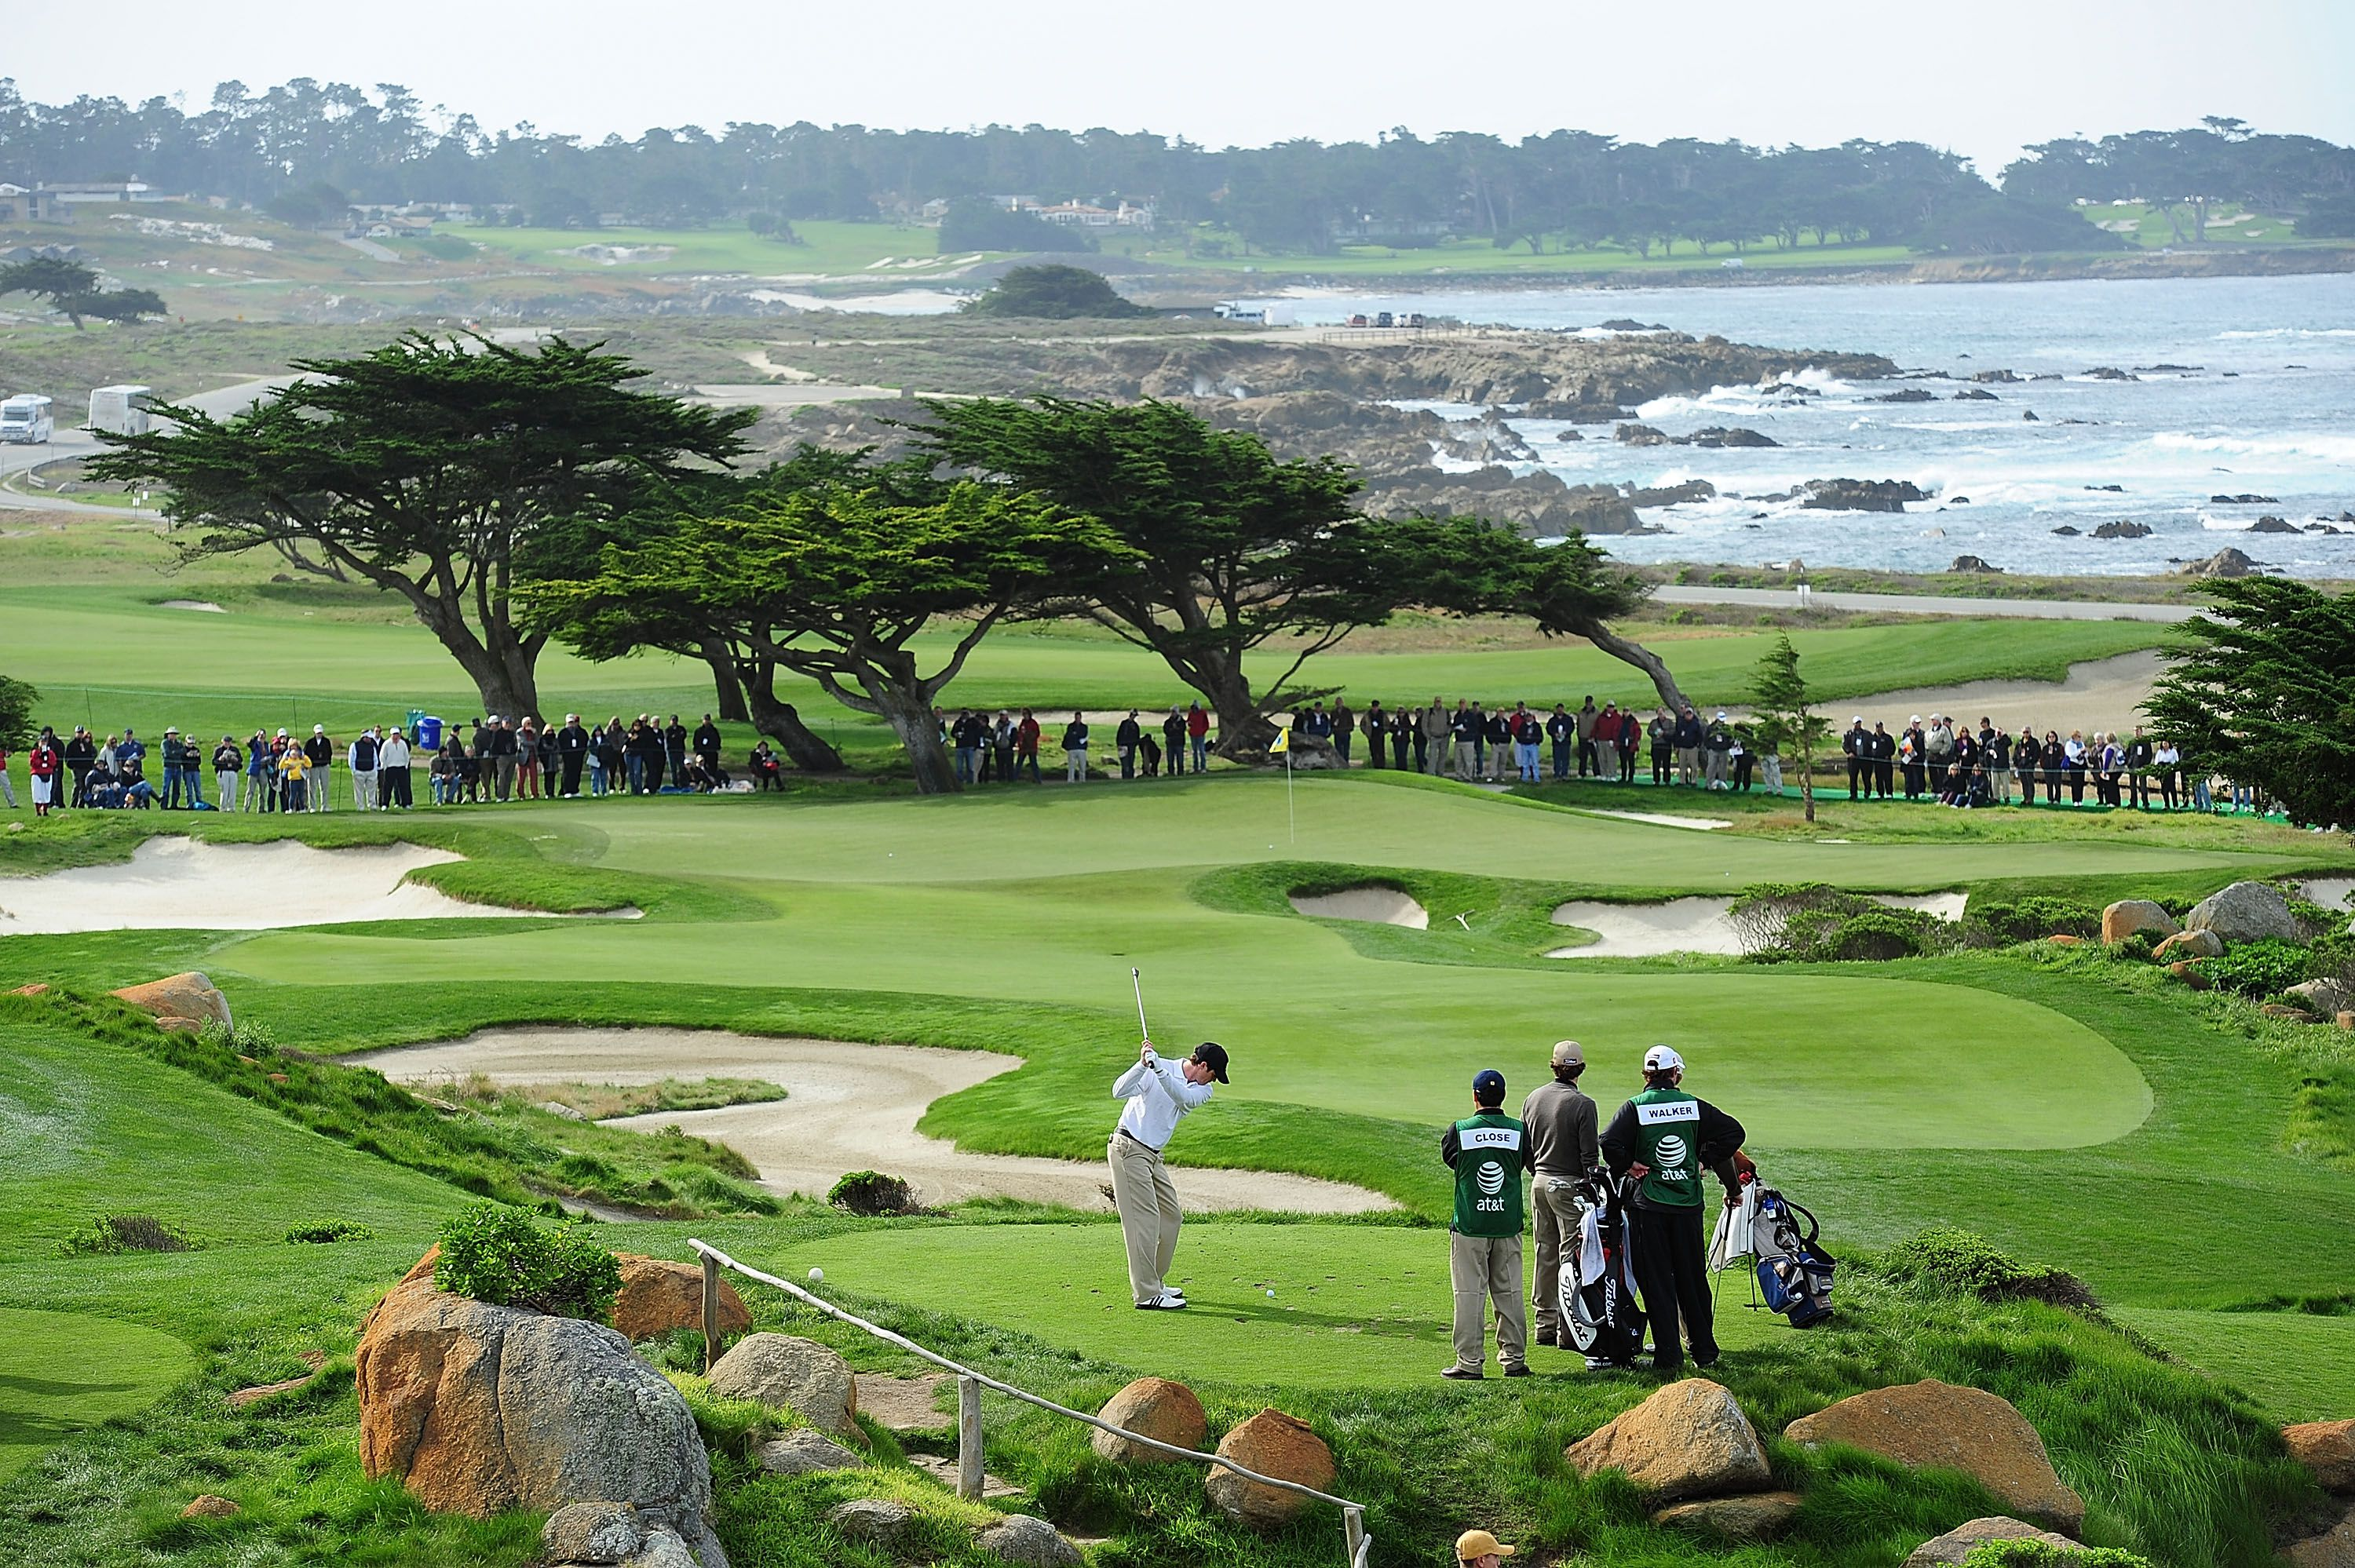 ATampT Pebble Beach National Pro Am Golf Tournament